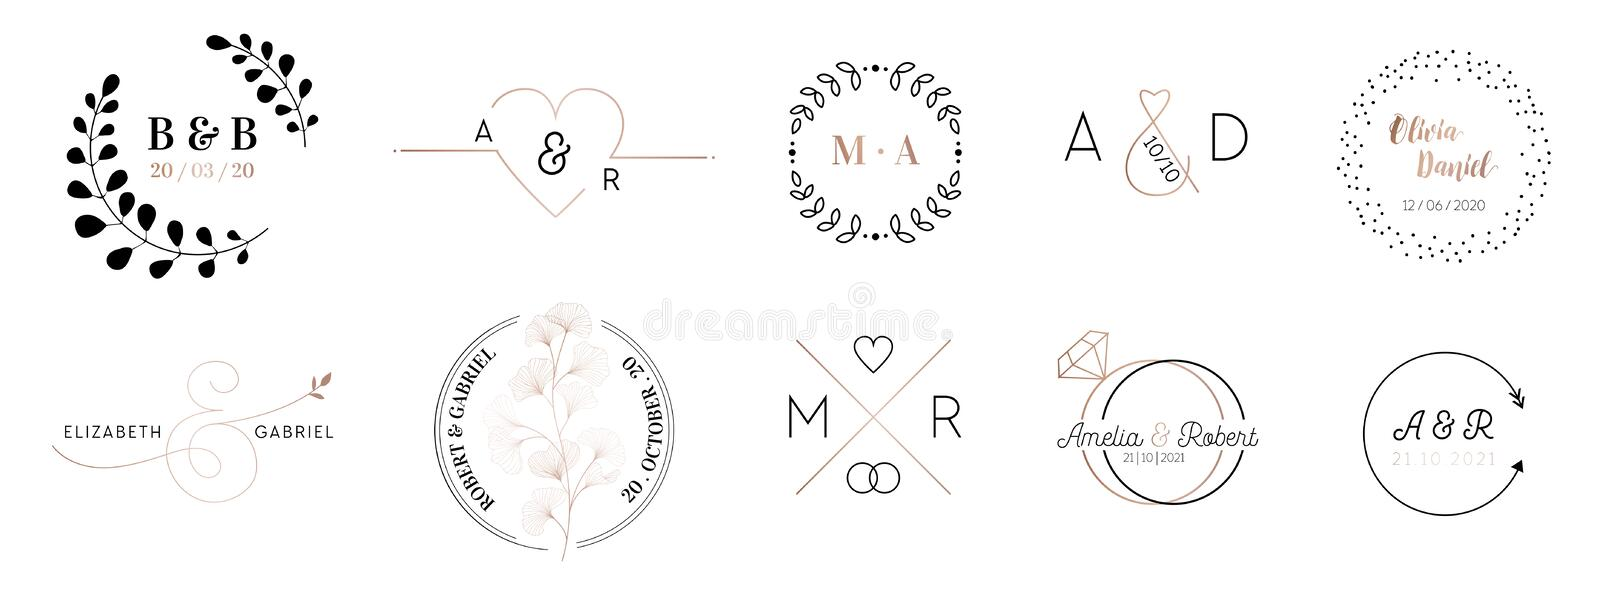 Wedding monogram logos collection, hand drawn modern minimalistic and floral templates Invitation cards, Save the Date stock illustration